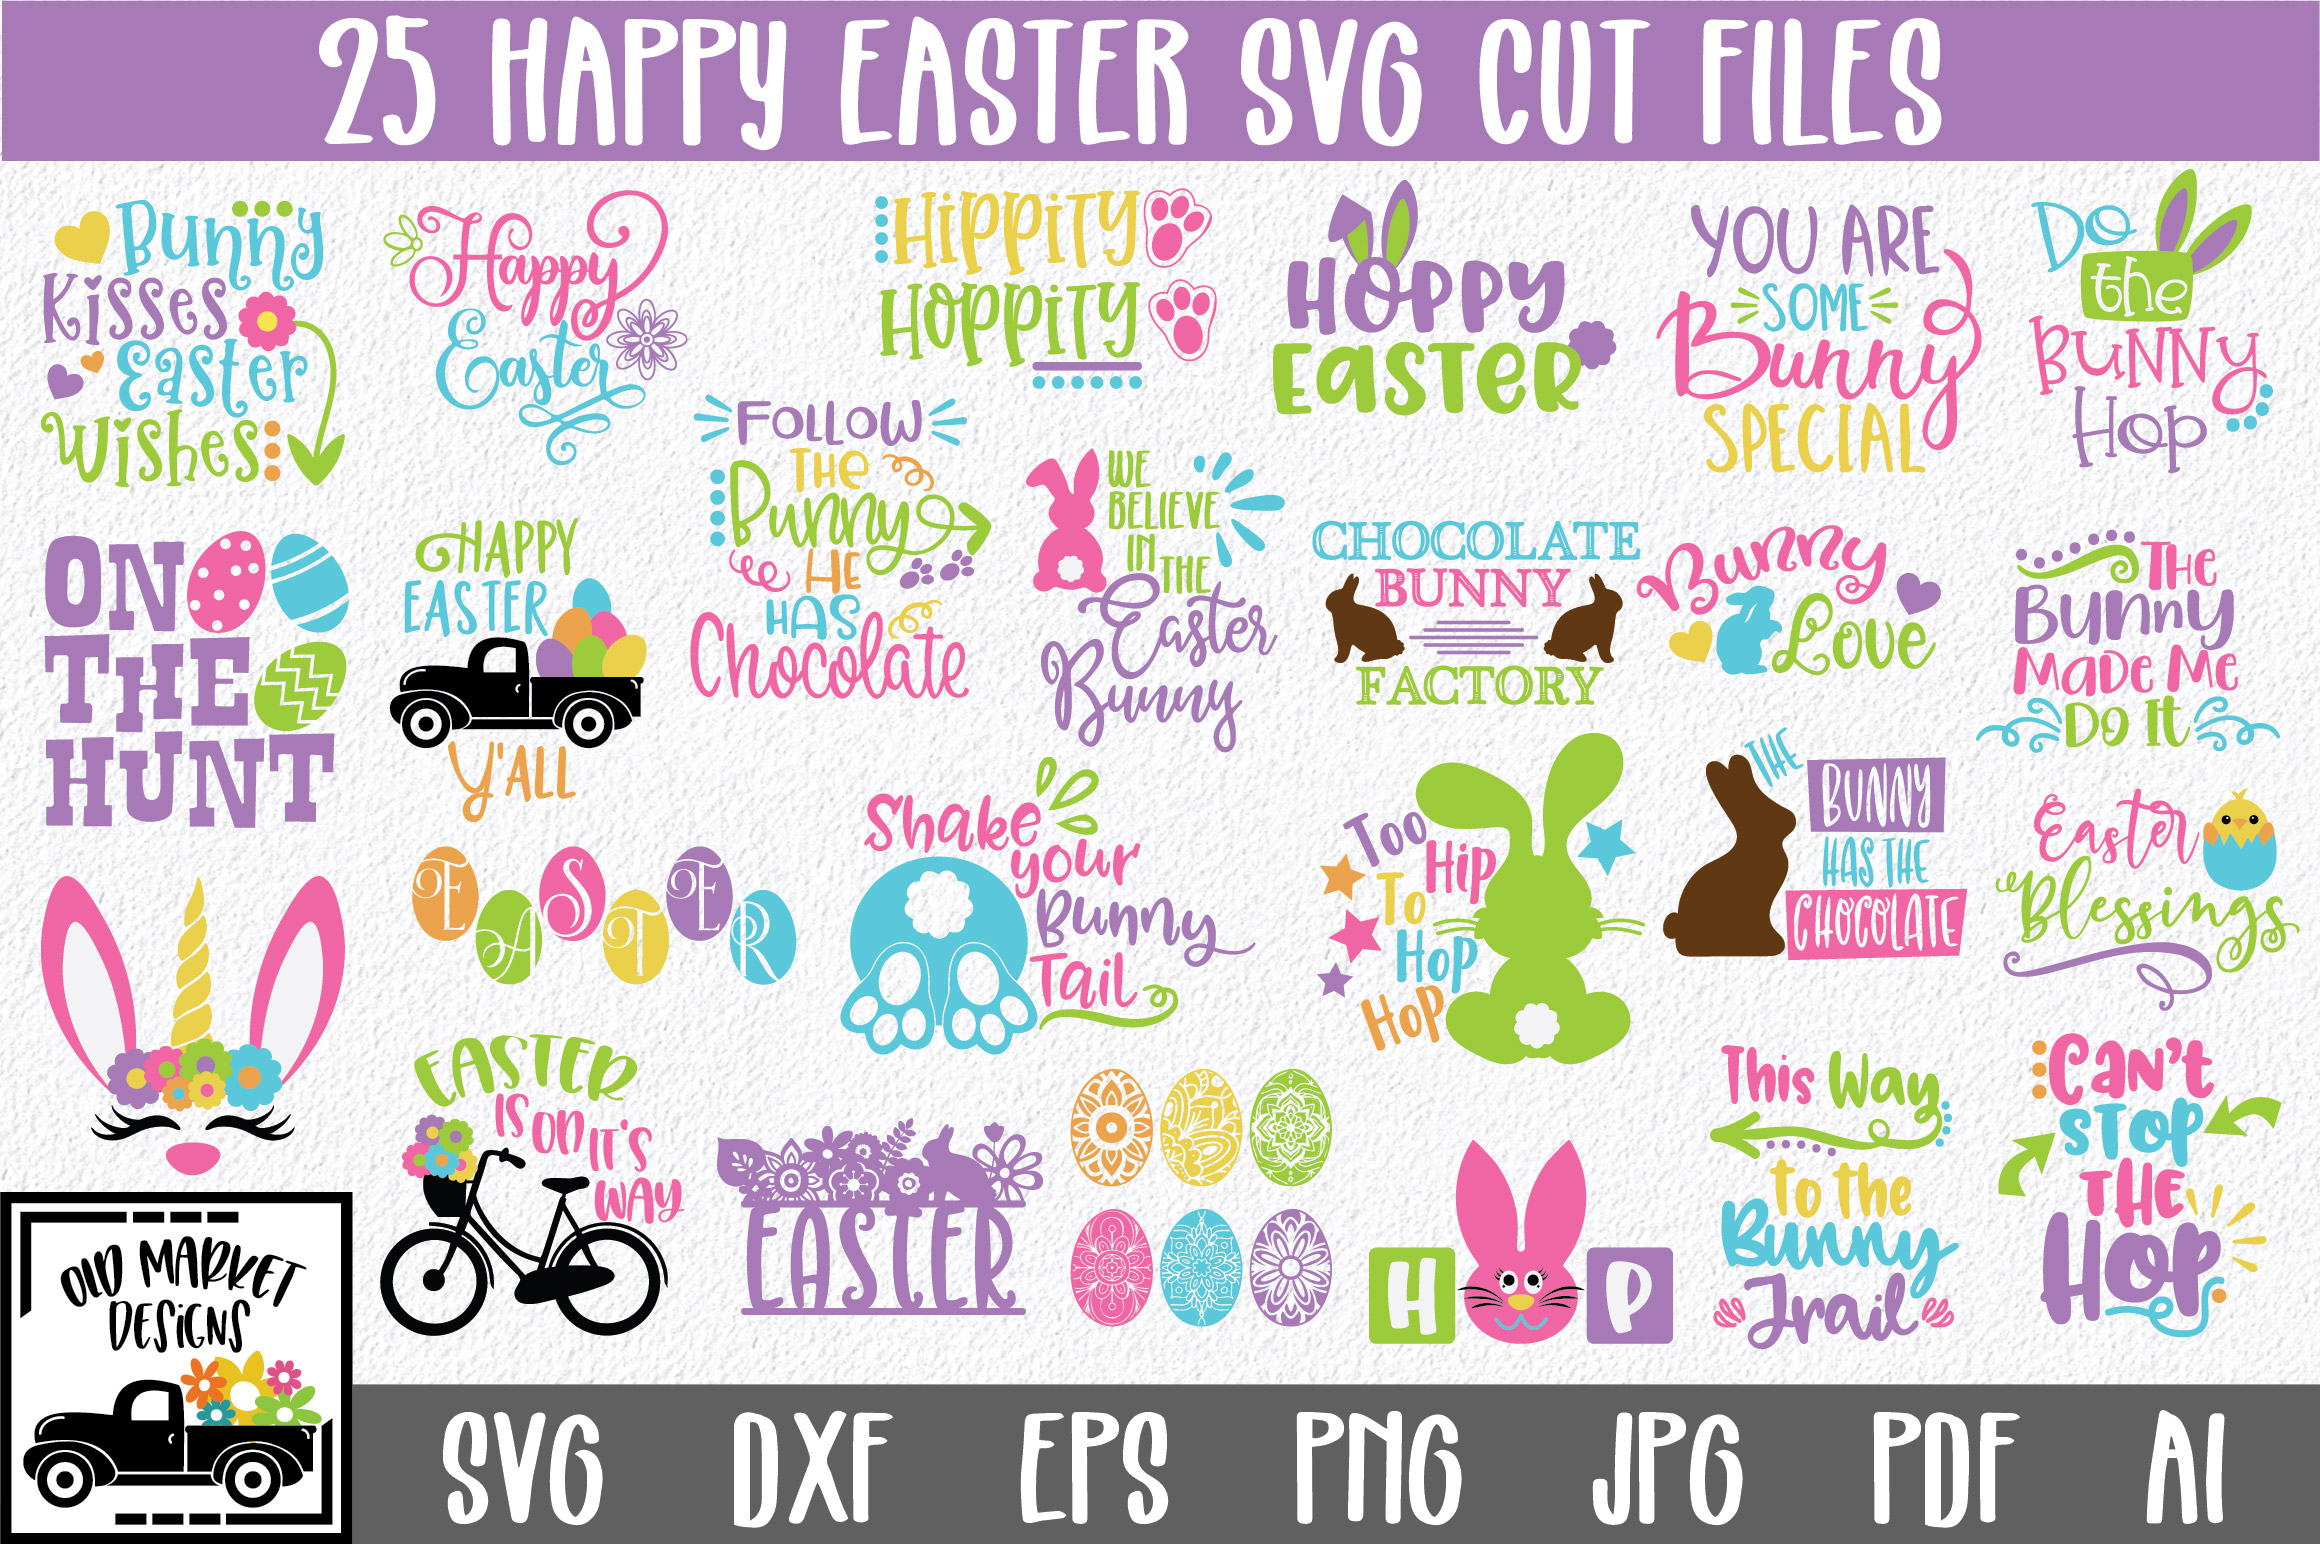 Easter SVG Bundle with 25 SVG Cut Files DXF EPS PNG AI JPG example image 1